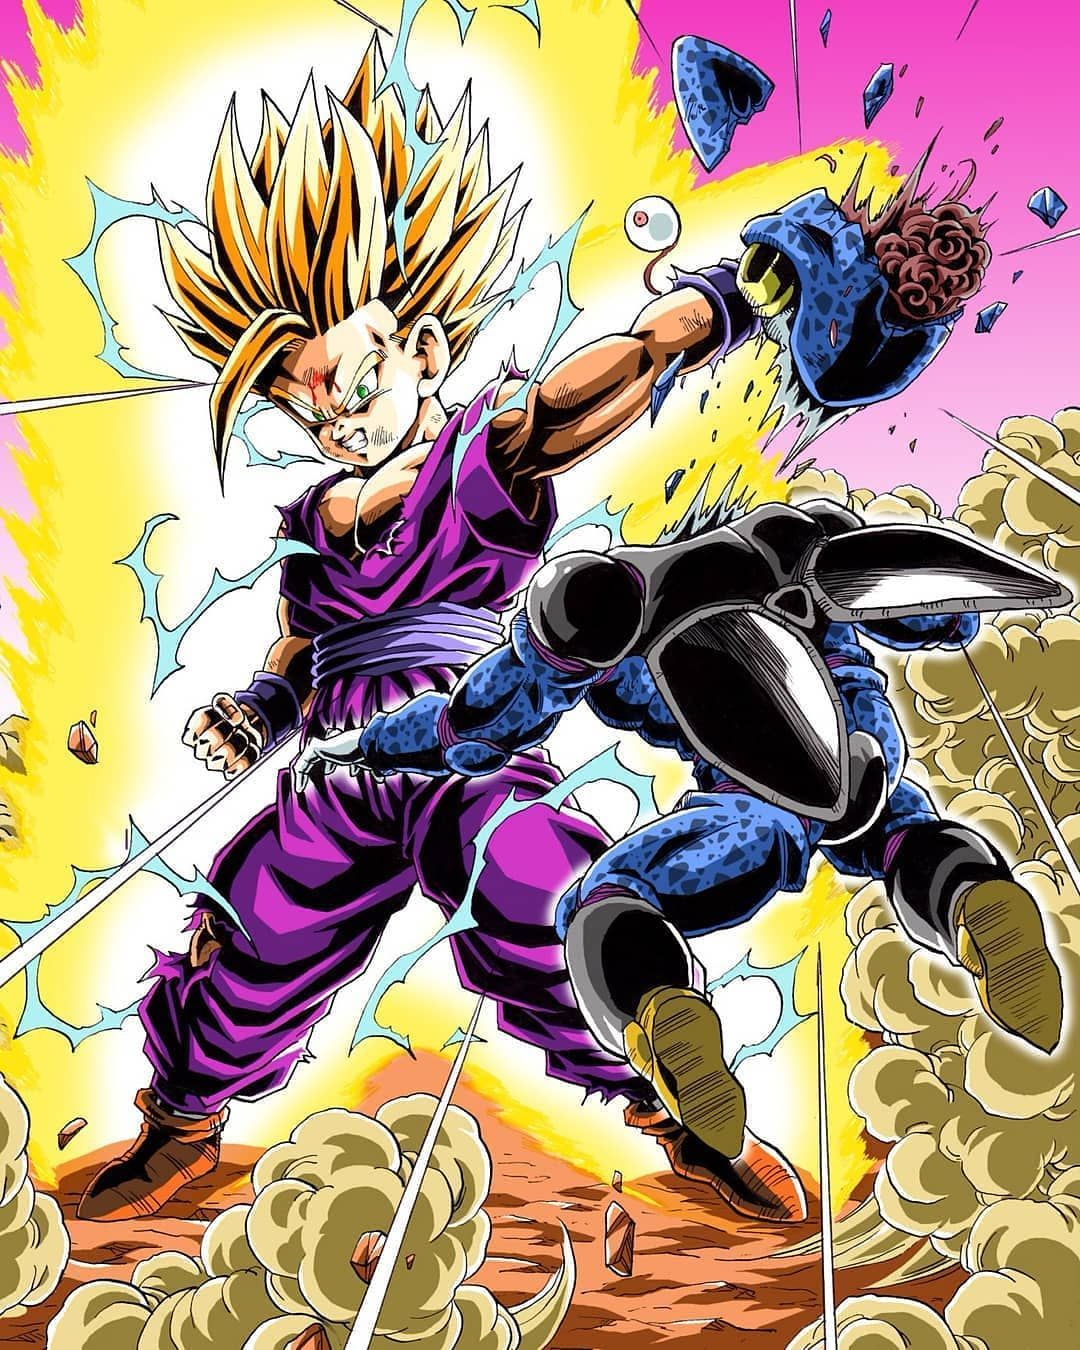 Dragon Ball Z Hashtags: Follow Me👉@dbseternity For Daily Uploads! Use My Hashtag